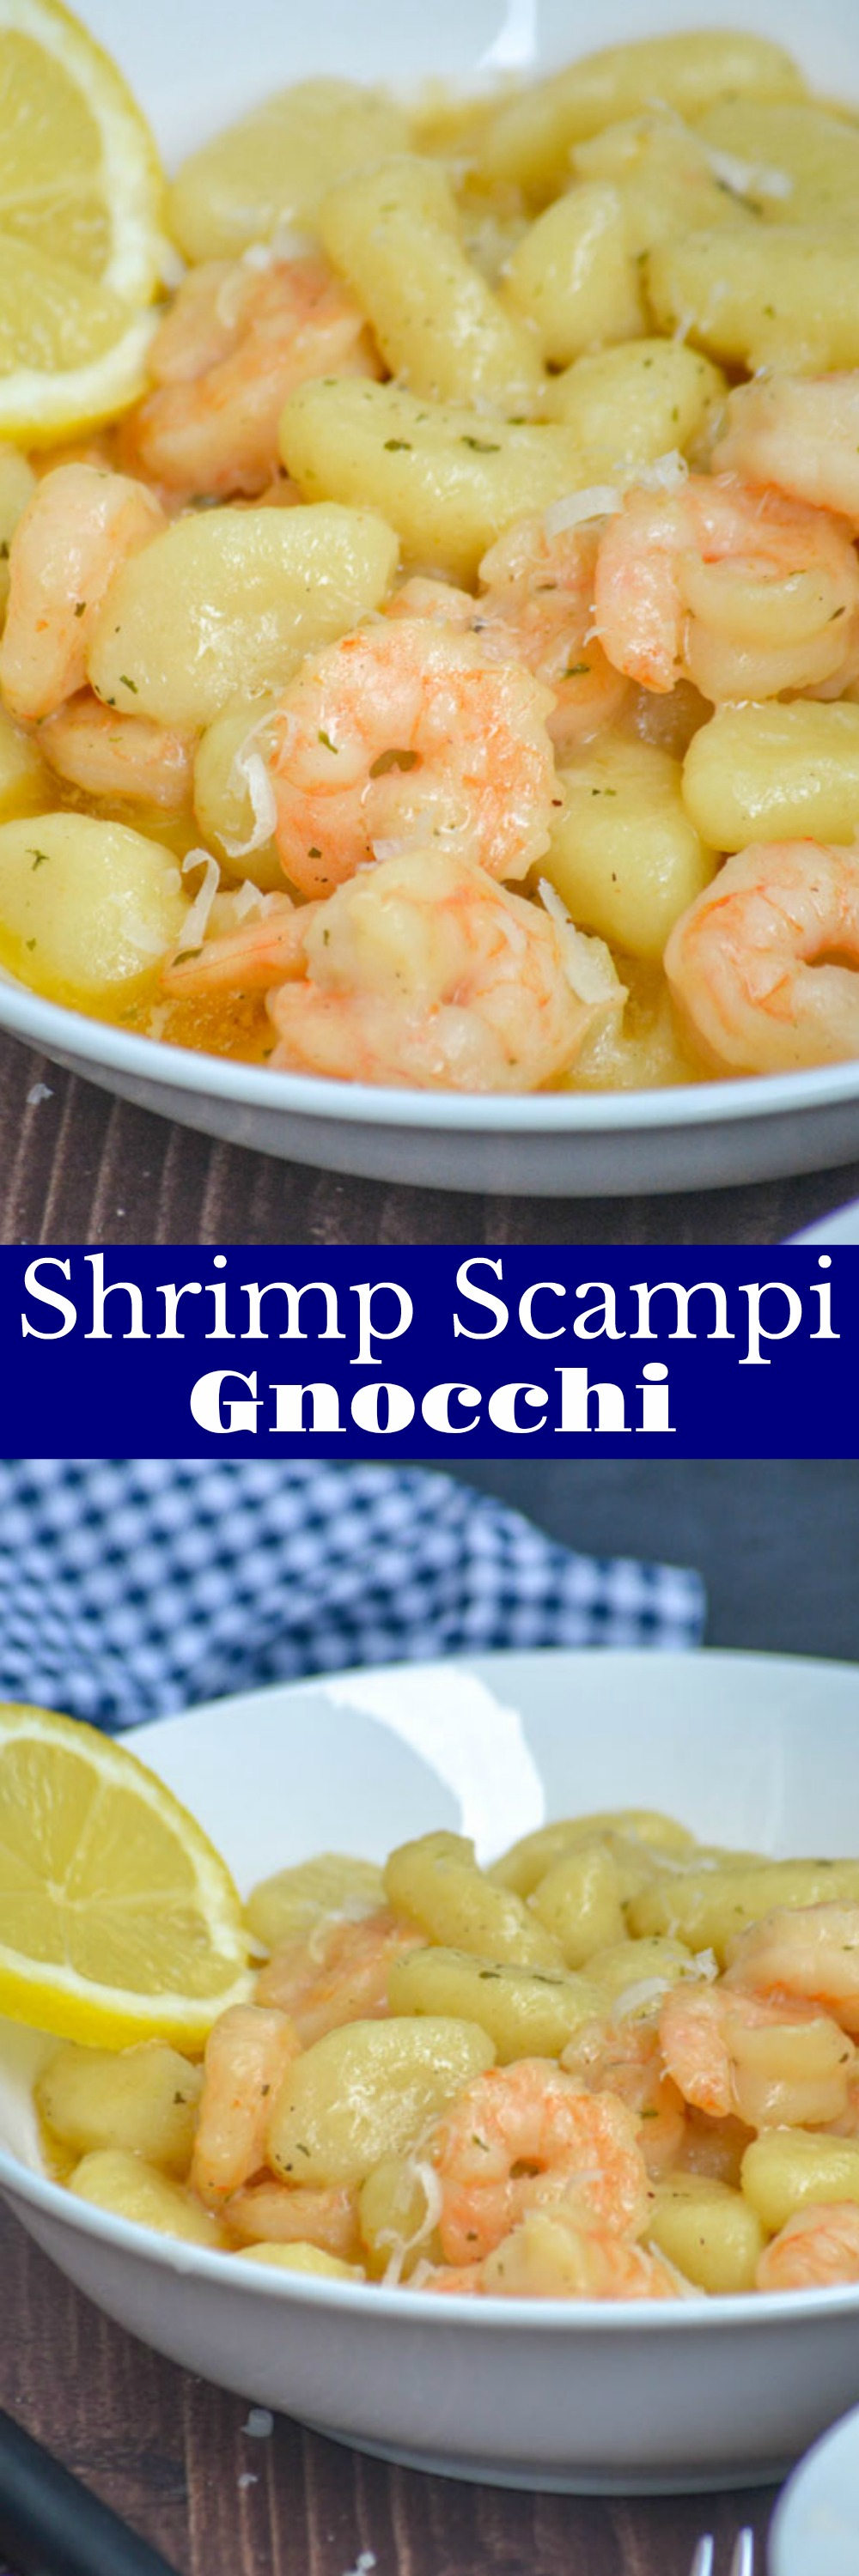 Gnocchi is even better than pasta, and takes on flavors just as well. Paired with shrimp in a garlic butter sauce, with a teensy bit of cream? You've got this Gnocchi Shrimp Scampi that's a to-die for dinner, even on a budget.